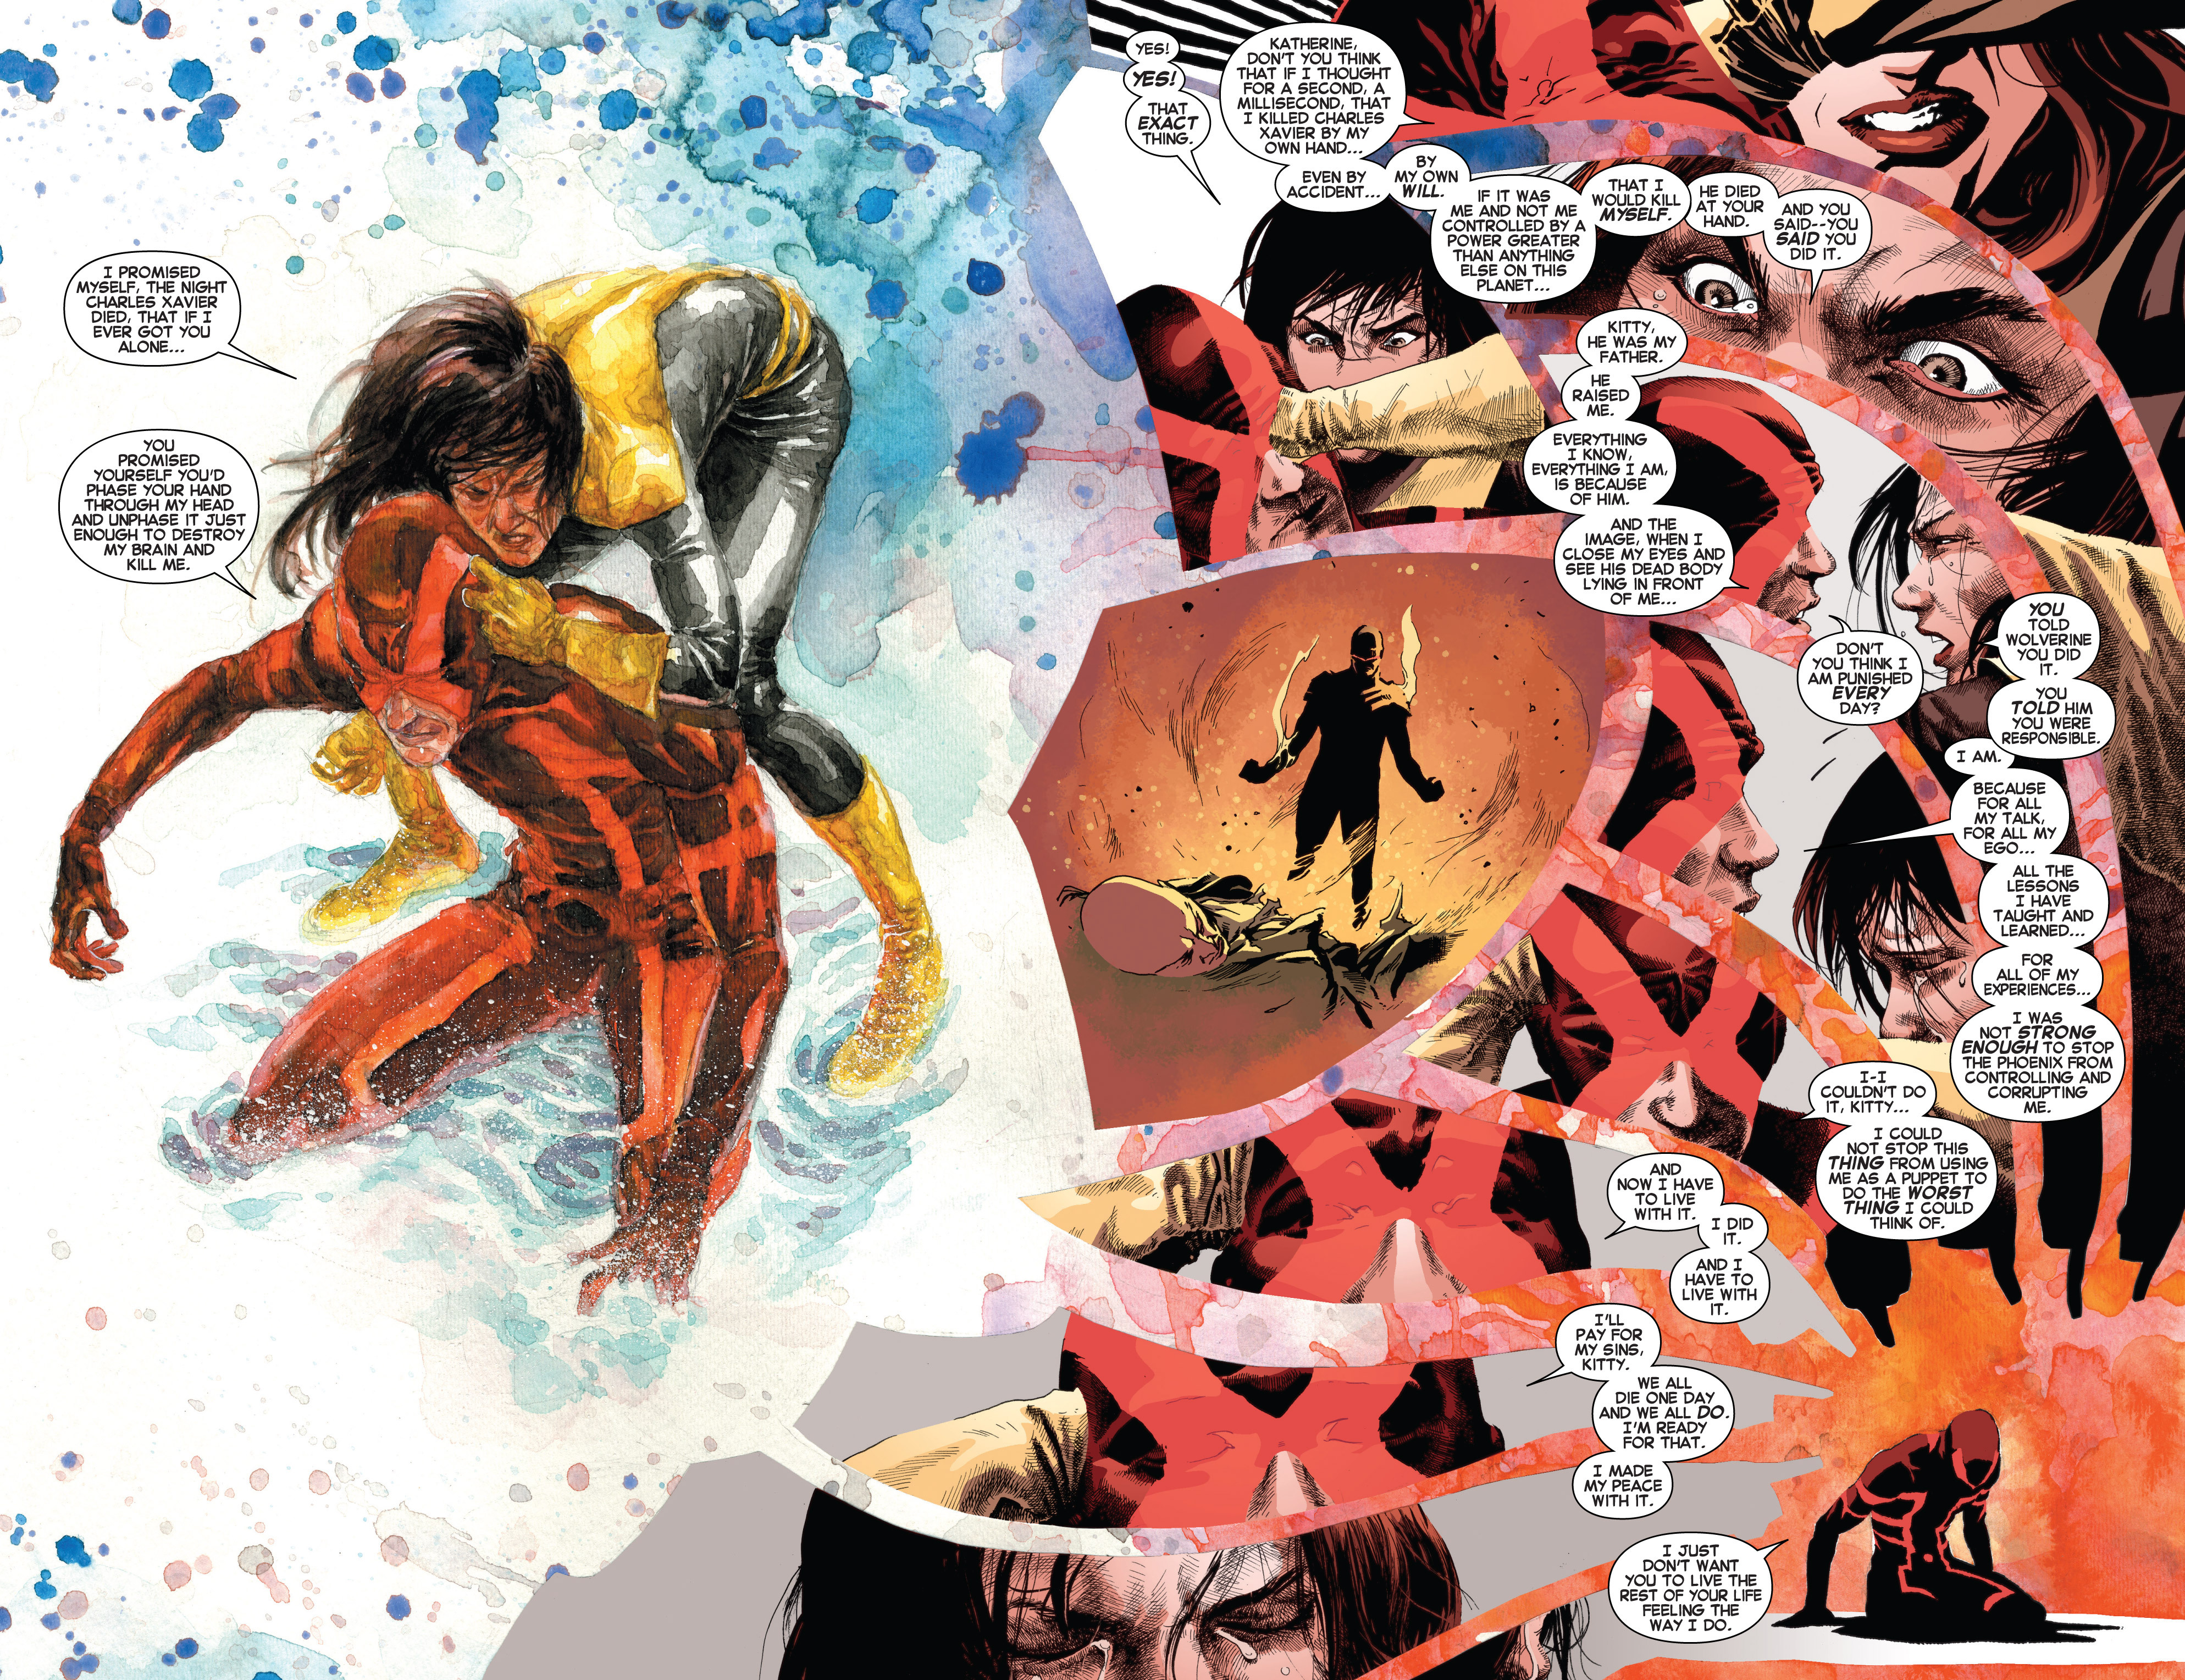 Read online Uncanny X-Men (2013) comic -  Issue # _TPB 3 - The Good, The Bad, The Inhuman - 93